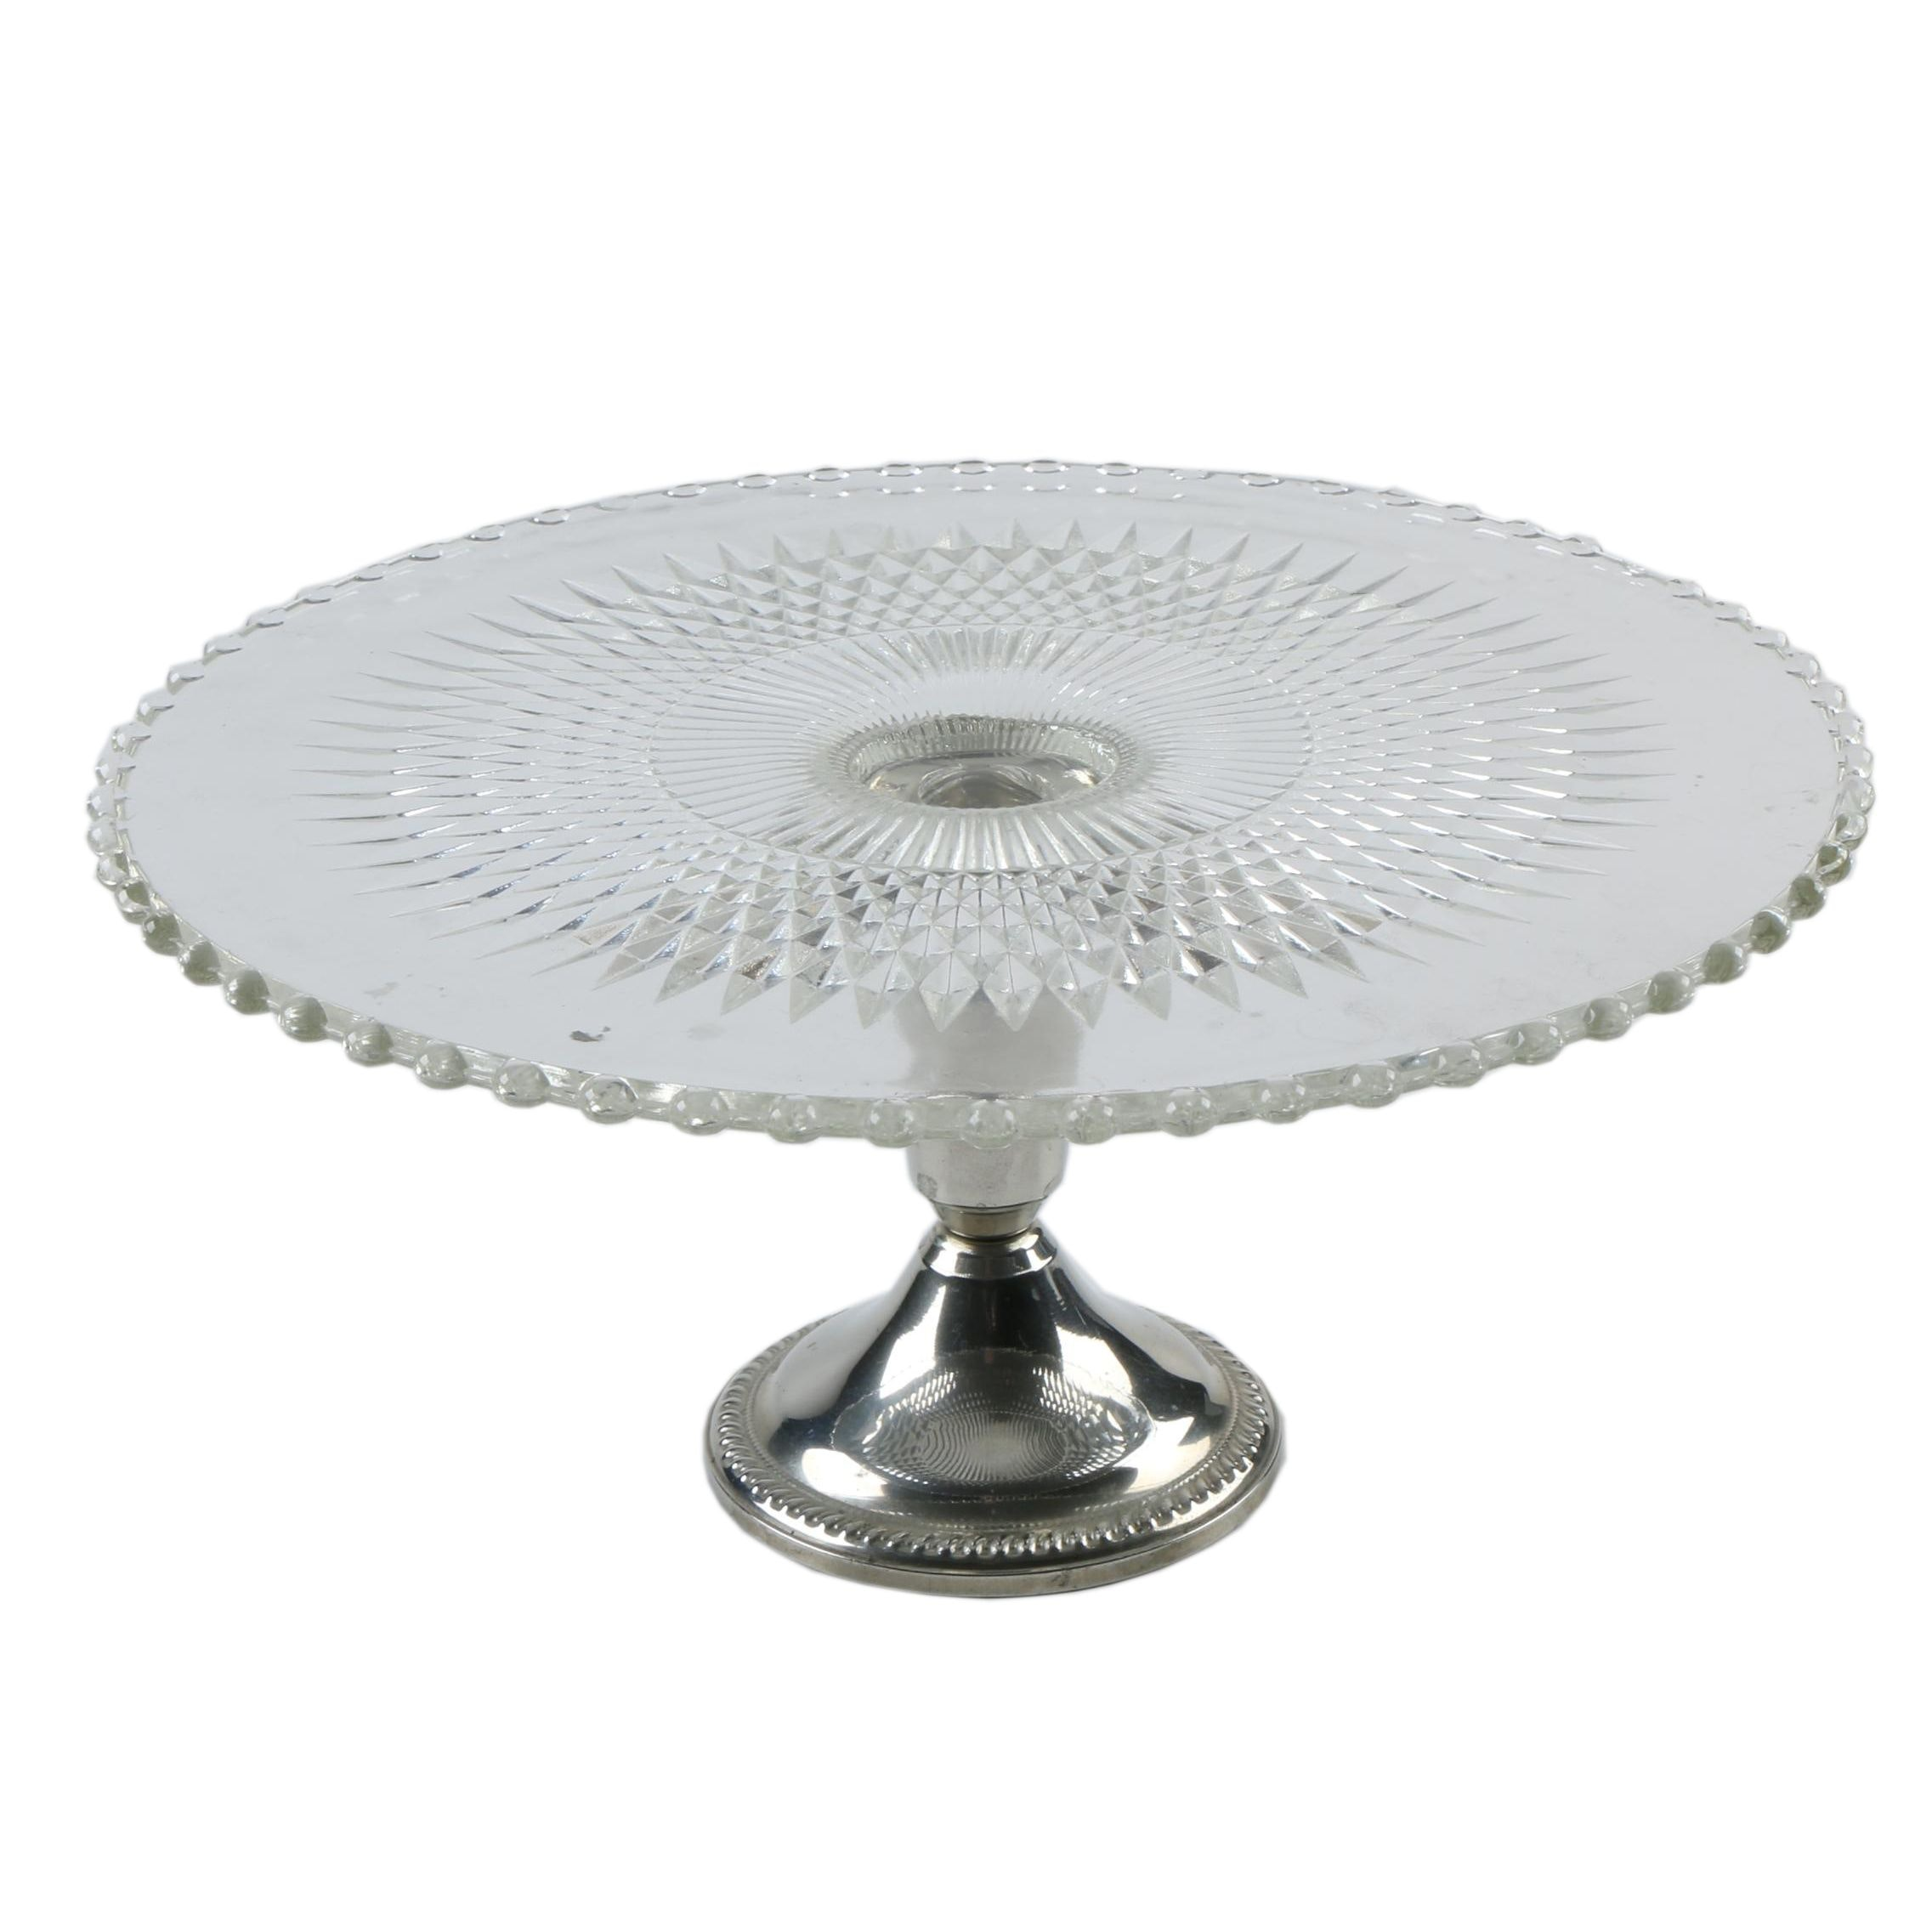 Glass and Silver Plate Cake Stand